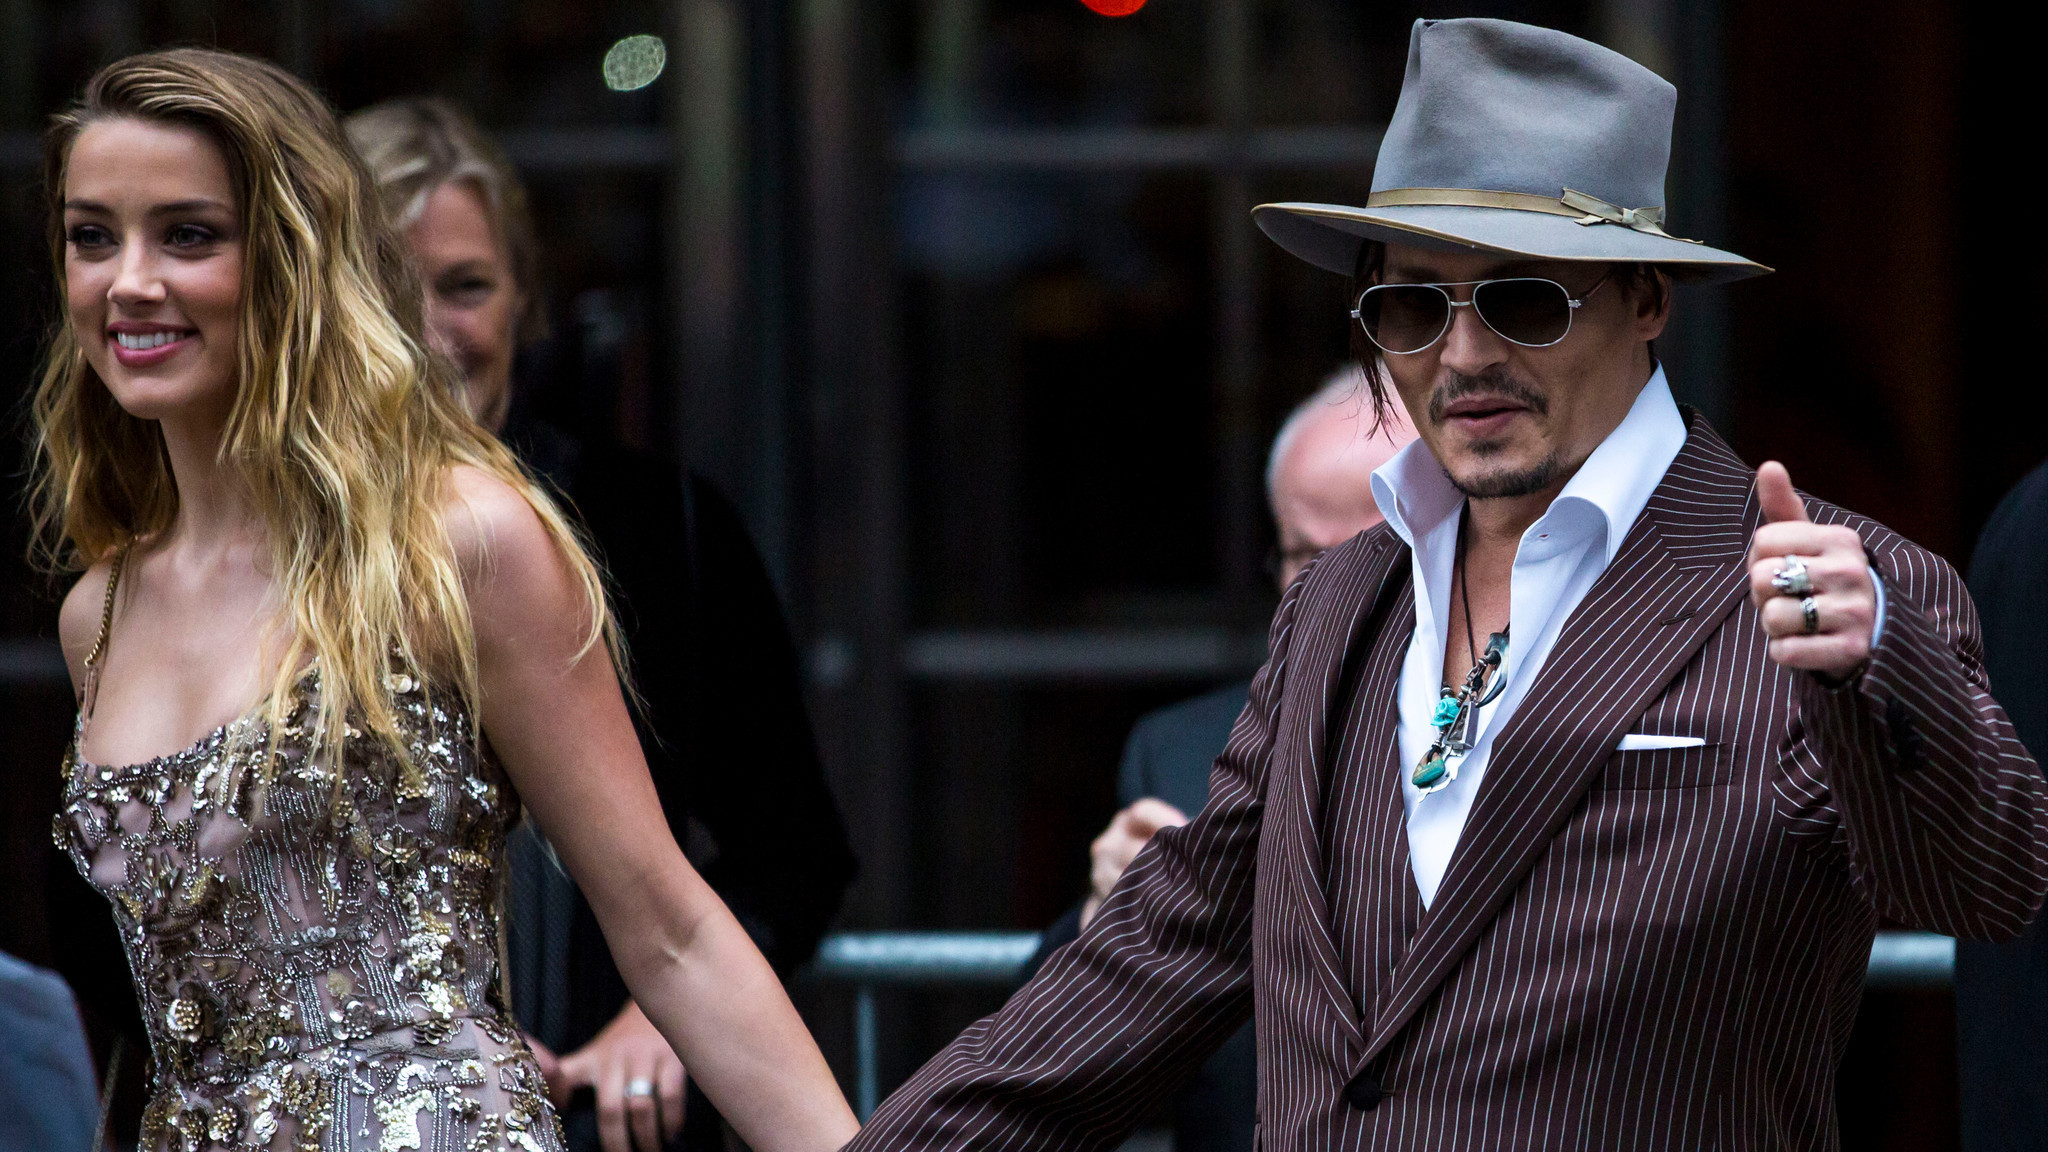 johnny depps wife files for divorce after year of